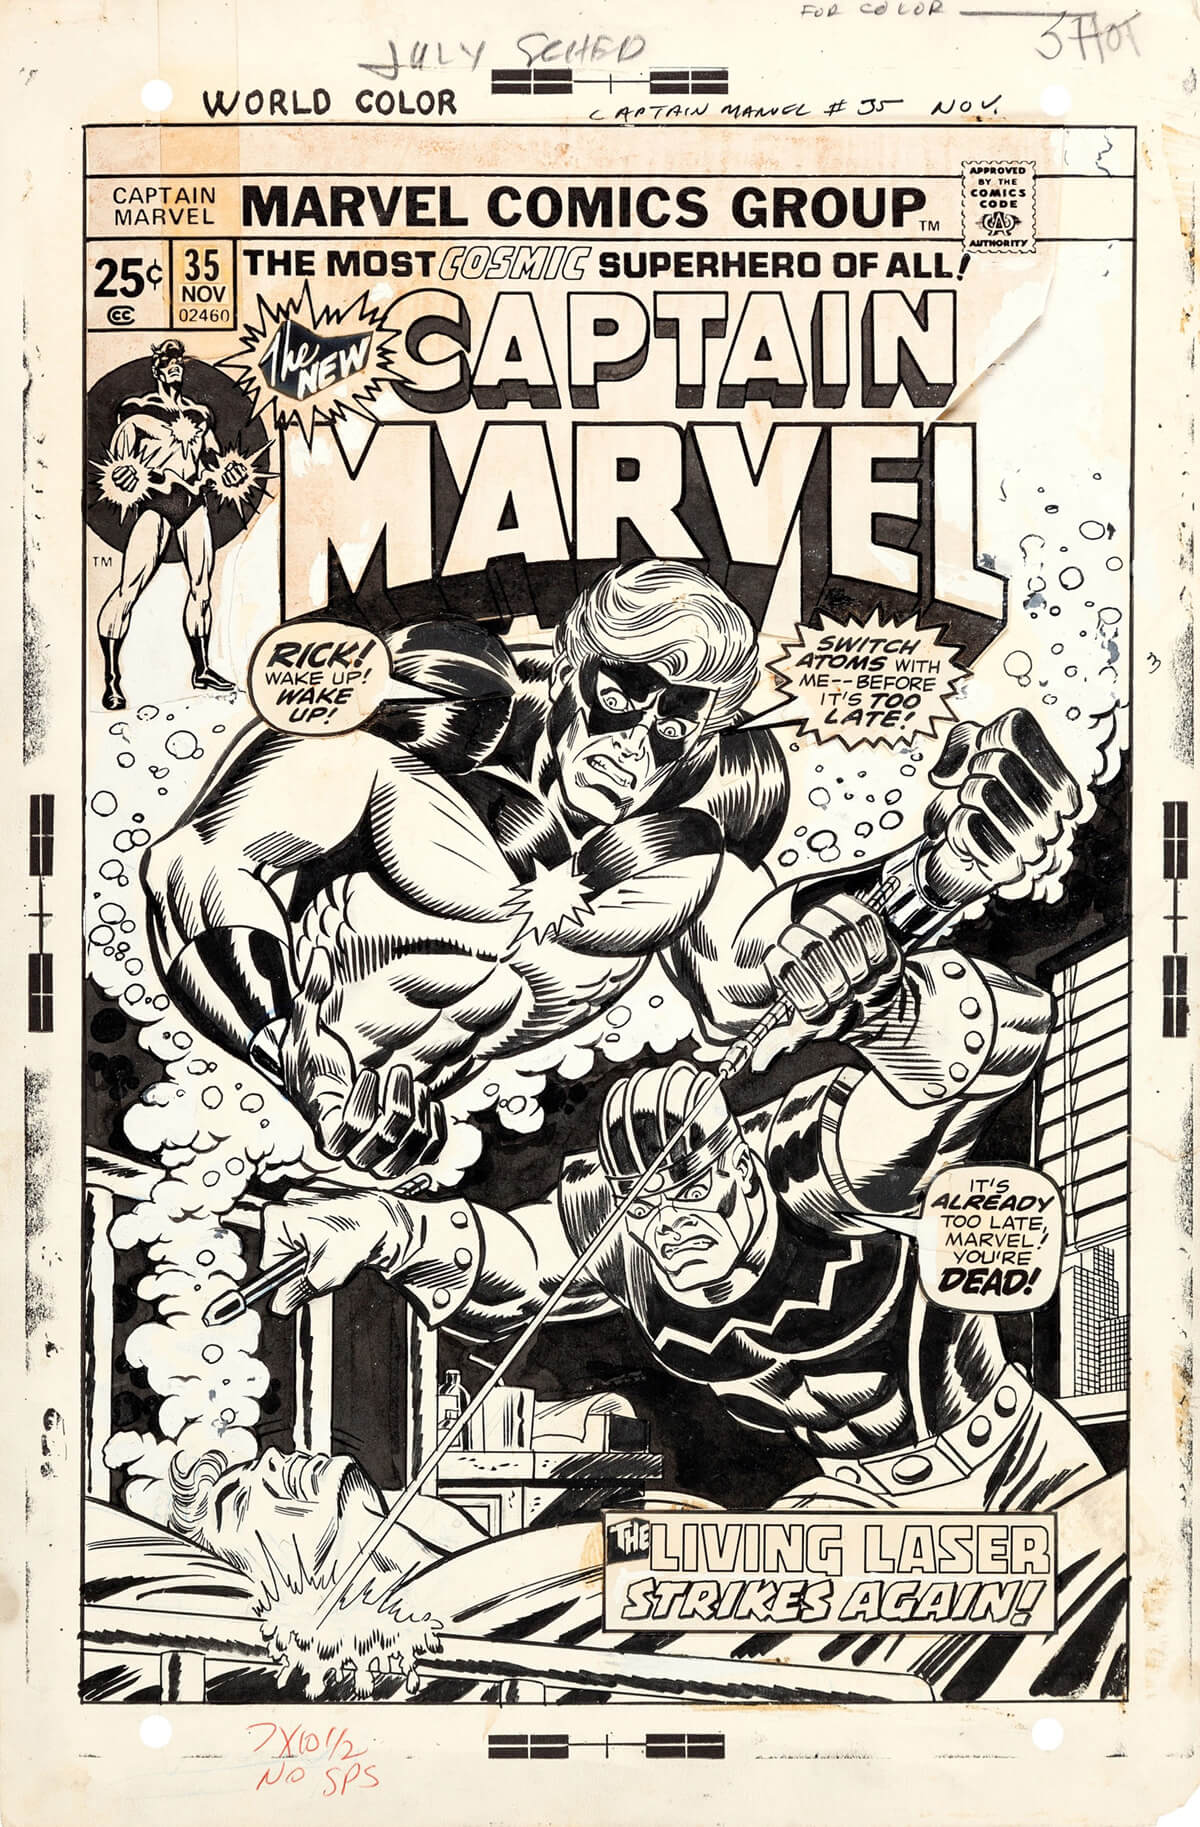 Captain Marvel 35 by Ron Wilson and Frank Giacoia